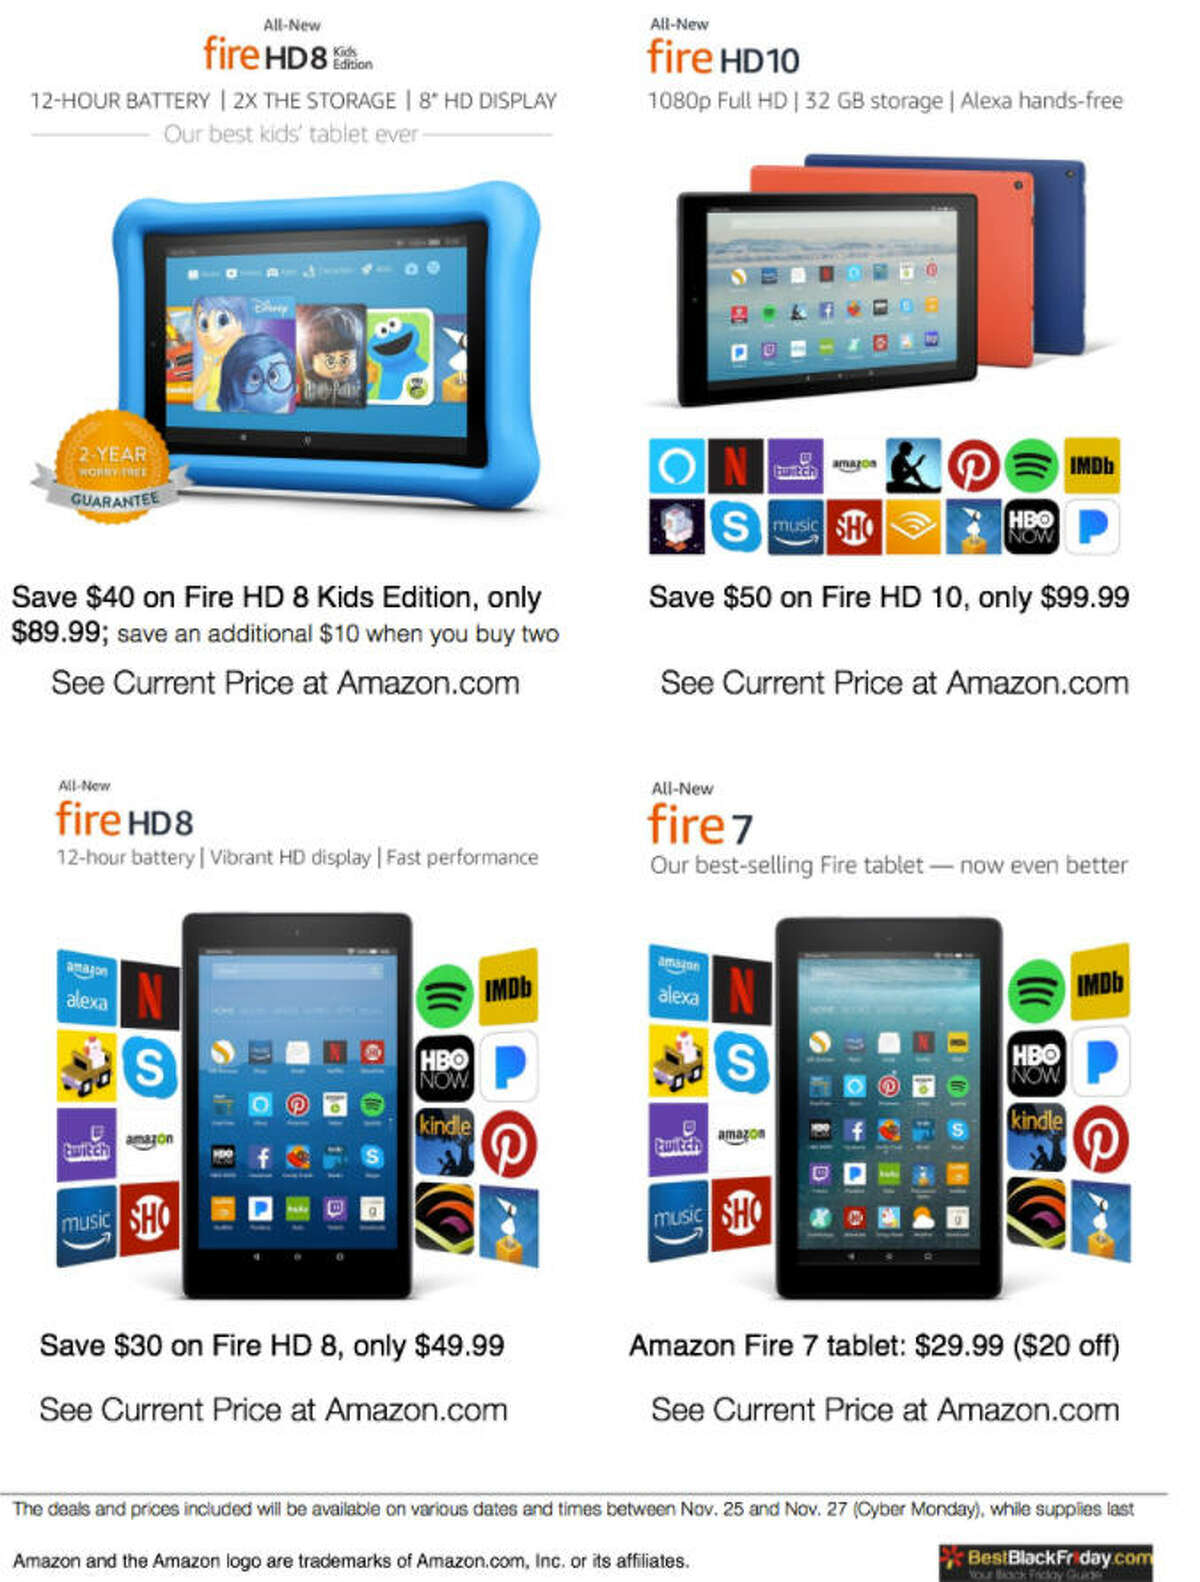 Amazon All-New Fire HD 10 for only $99.99 (save $50)